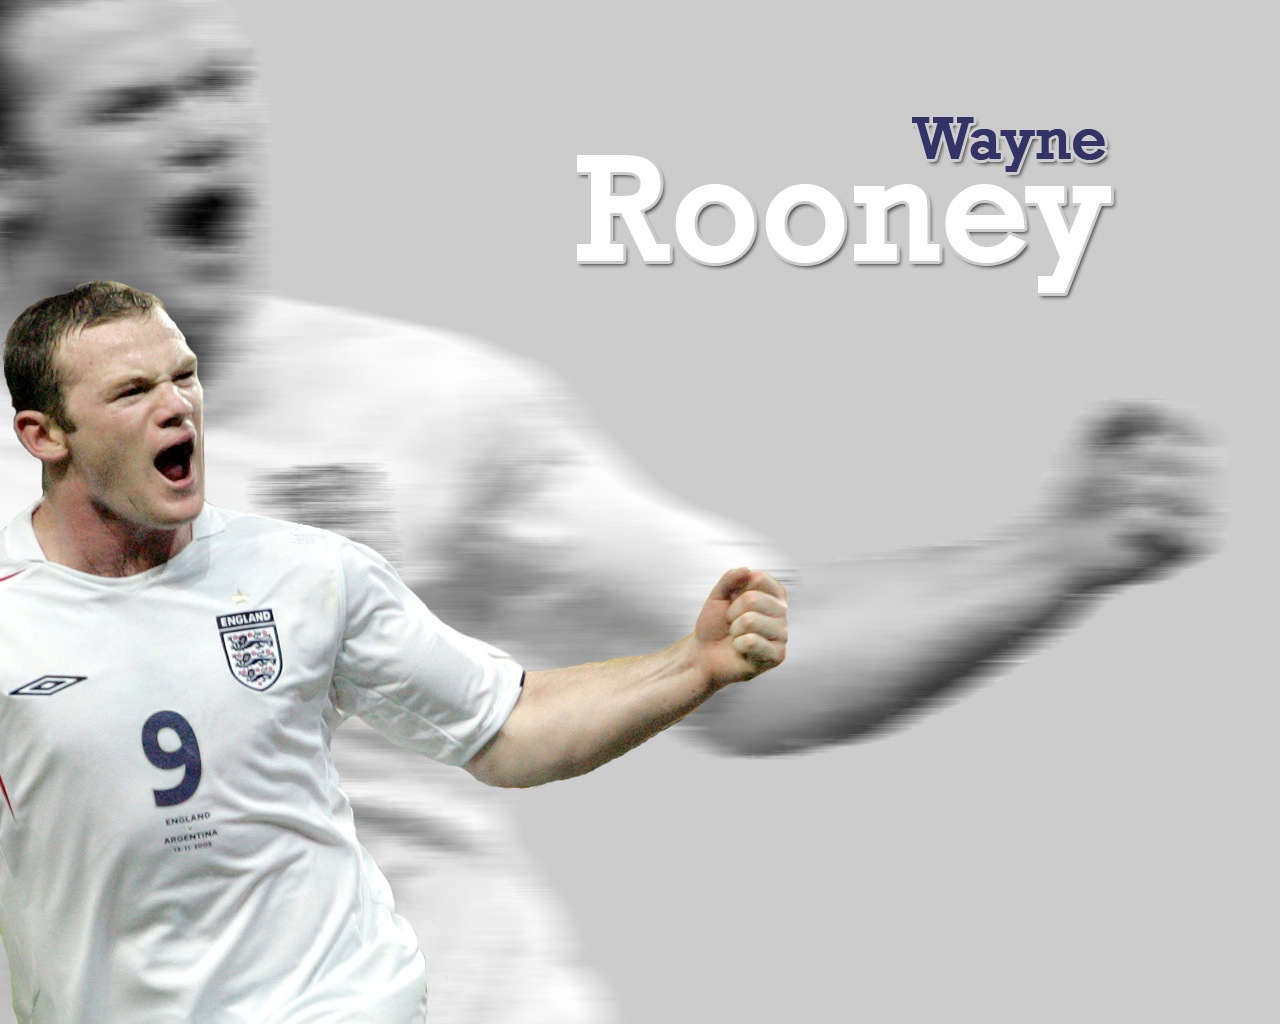 New Wayne Rooney Wallpapers